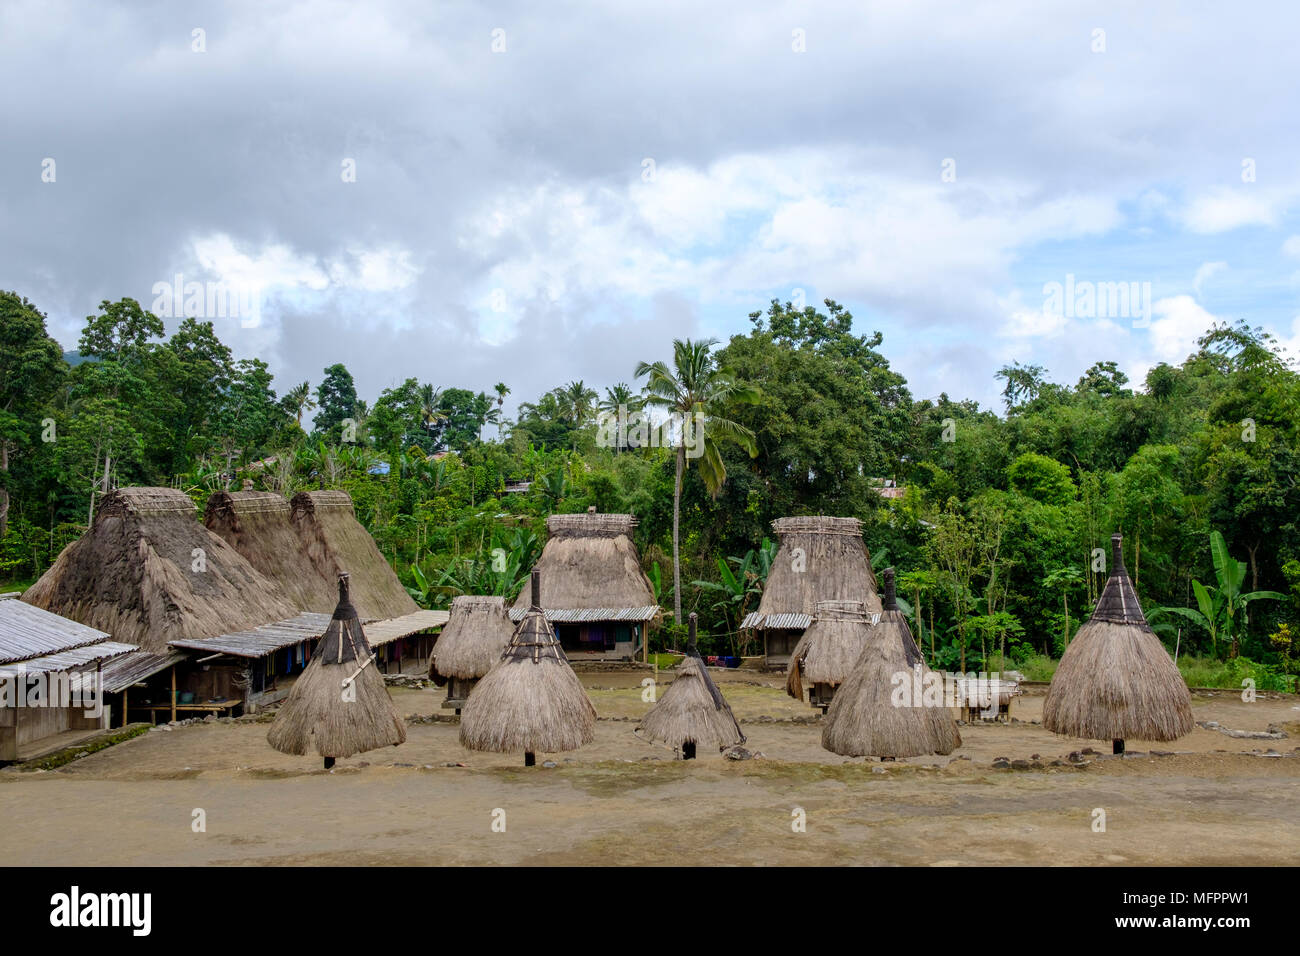 Thatched roof houses (back) and 'ngadhu' (front, symbolising male ancestors) at small Luba hamlet, Ngada District, Island of Flores, Indonesia. - Stock Image